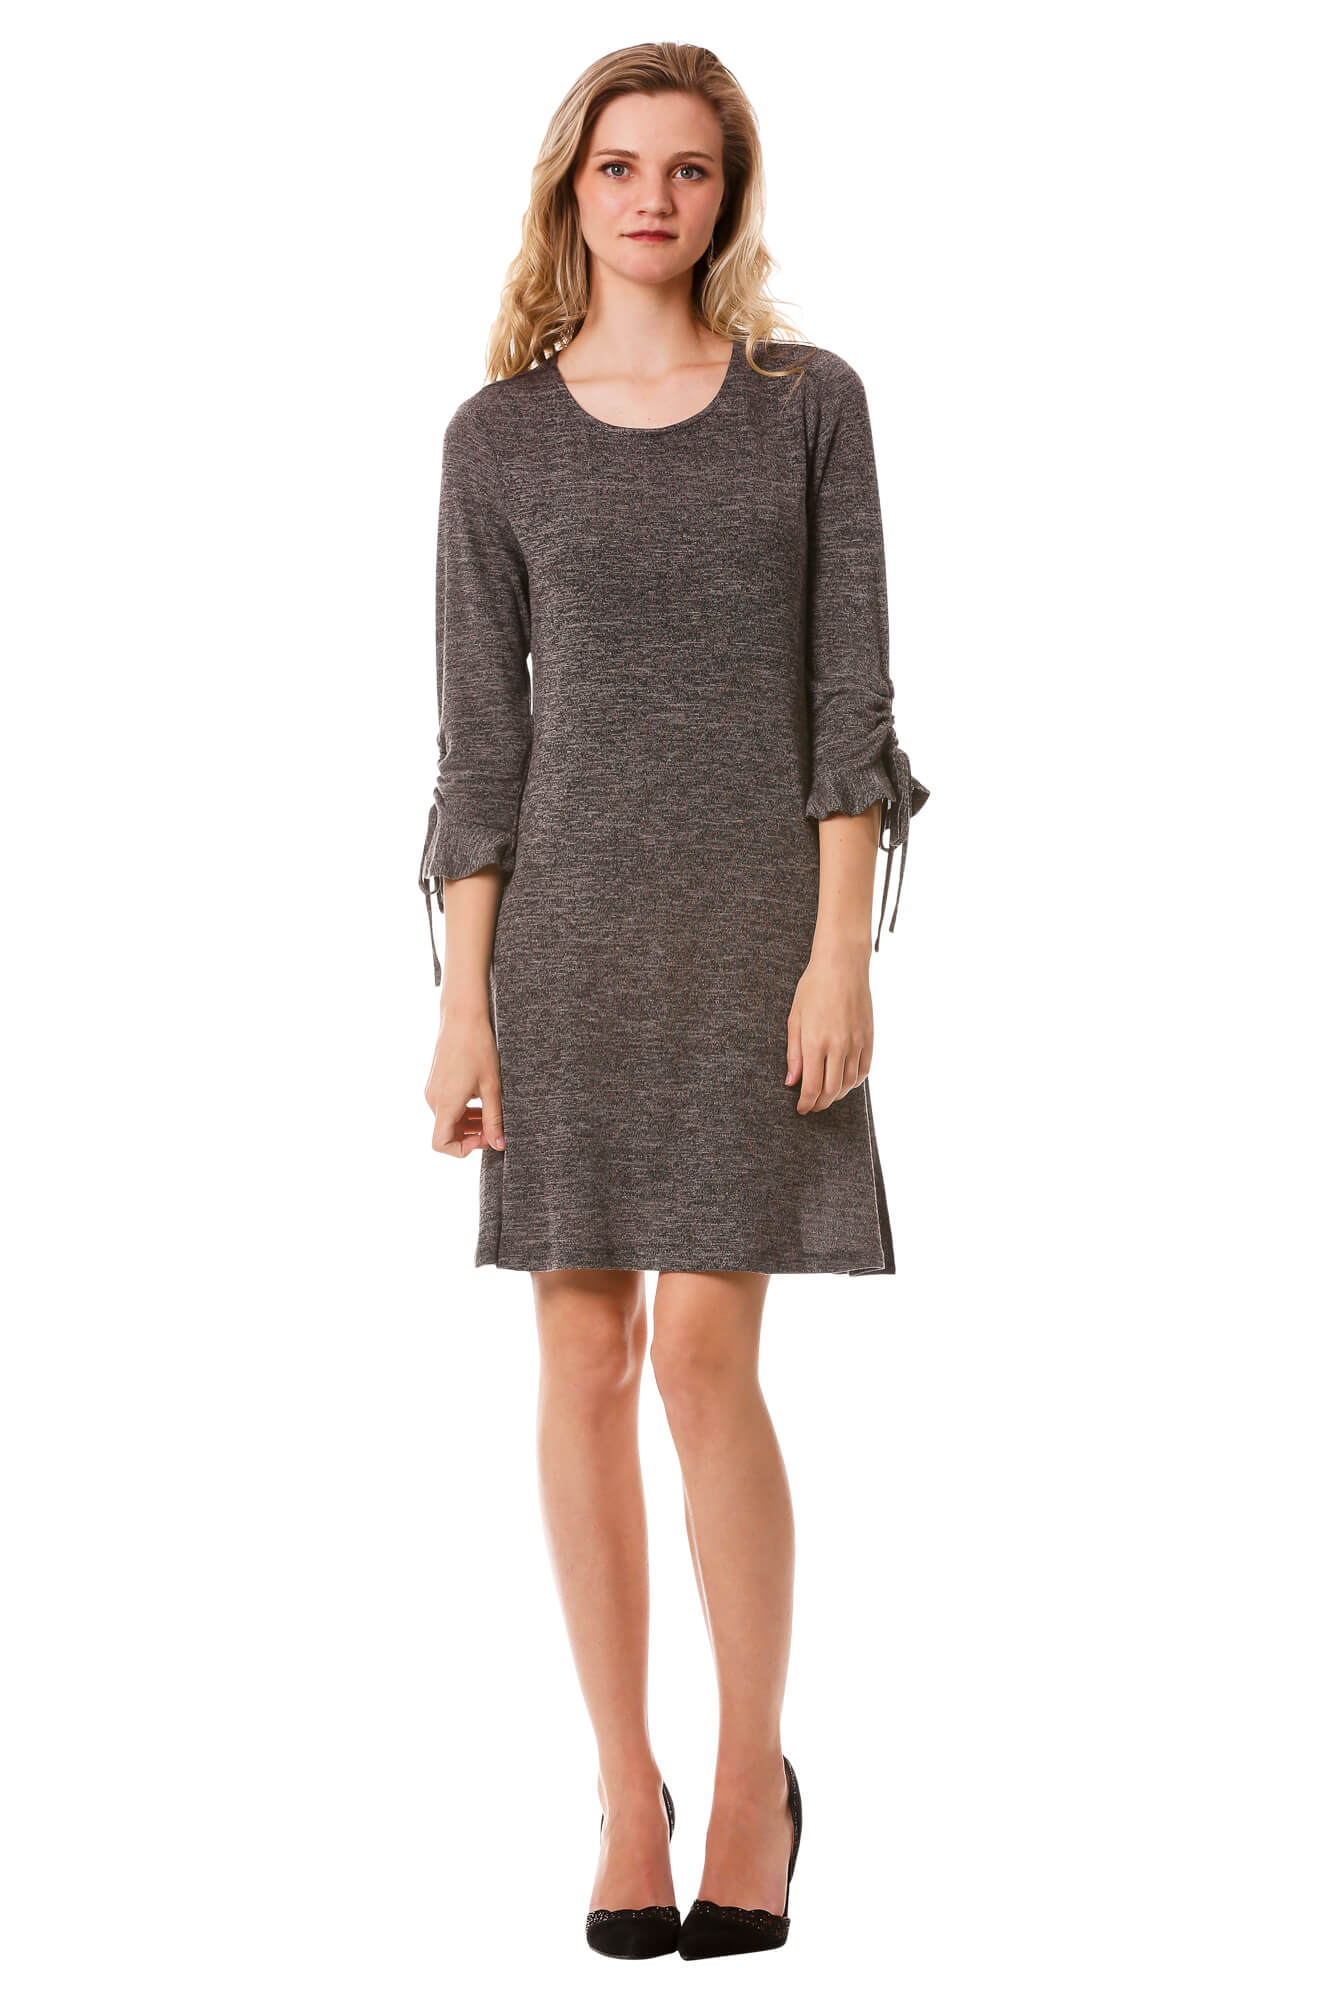 Women's Dark Grey Ruffle Bell Sleeve Sweater Dress | 3/4 Sleeve Dress | Neesha